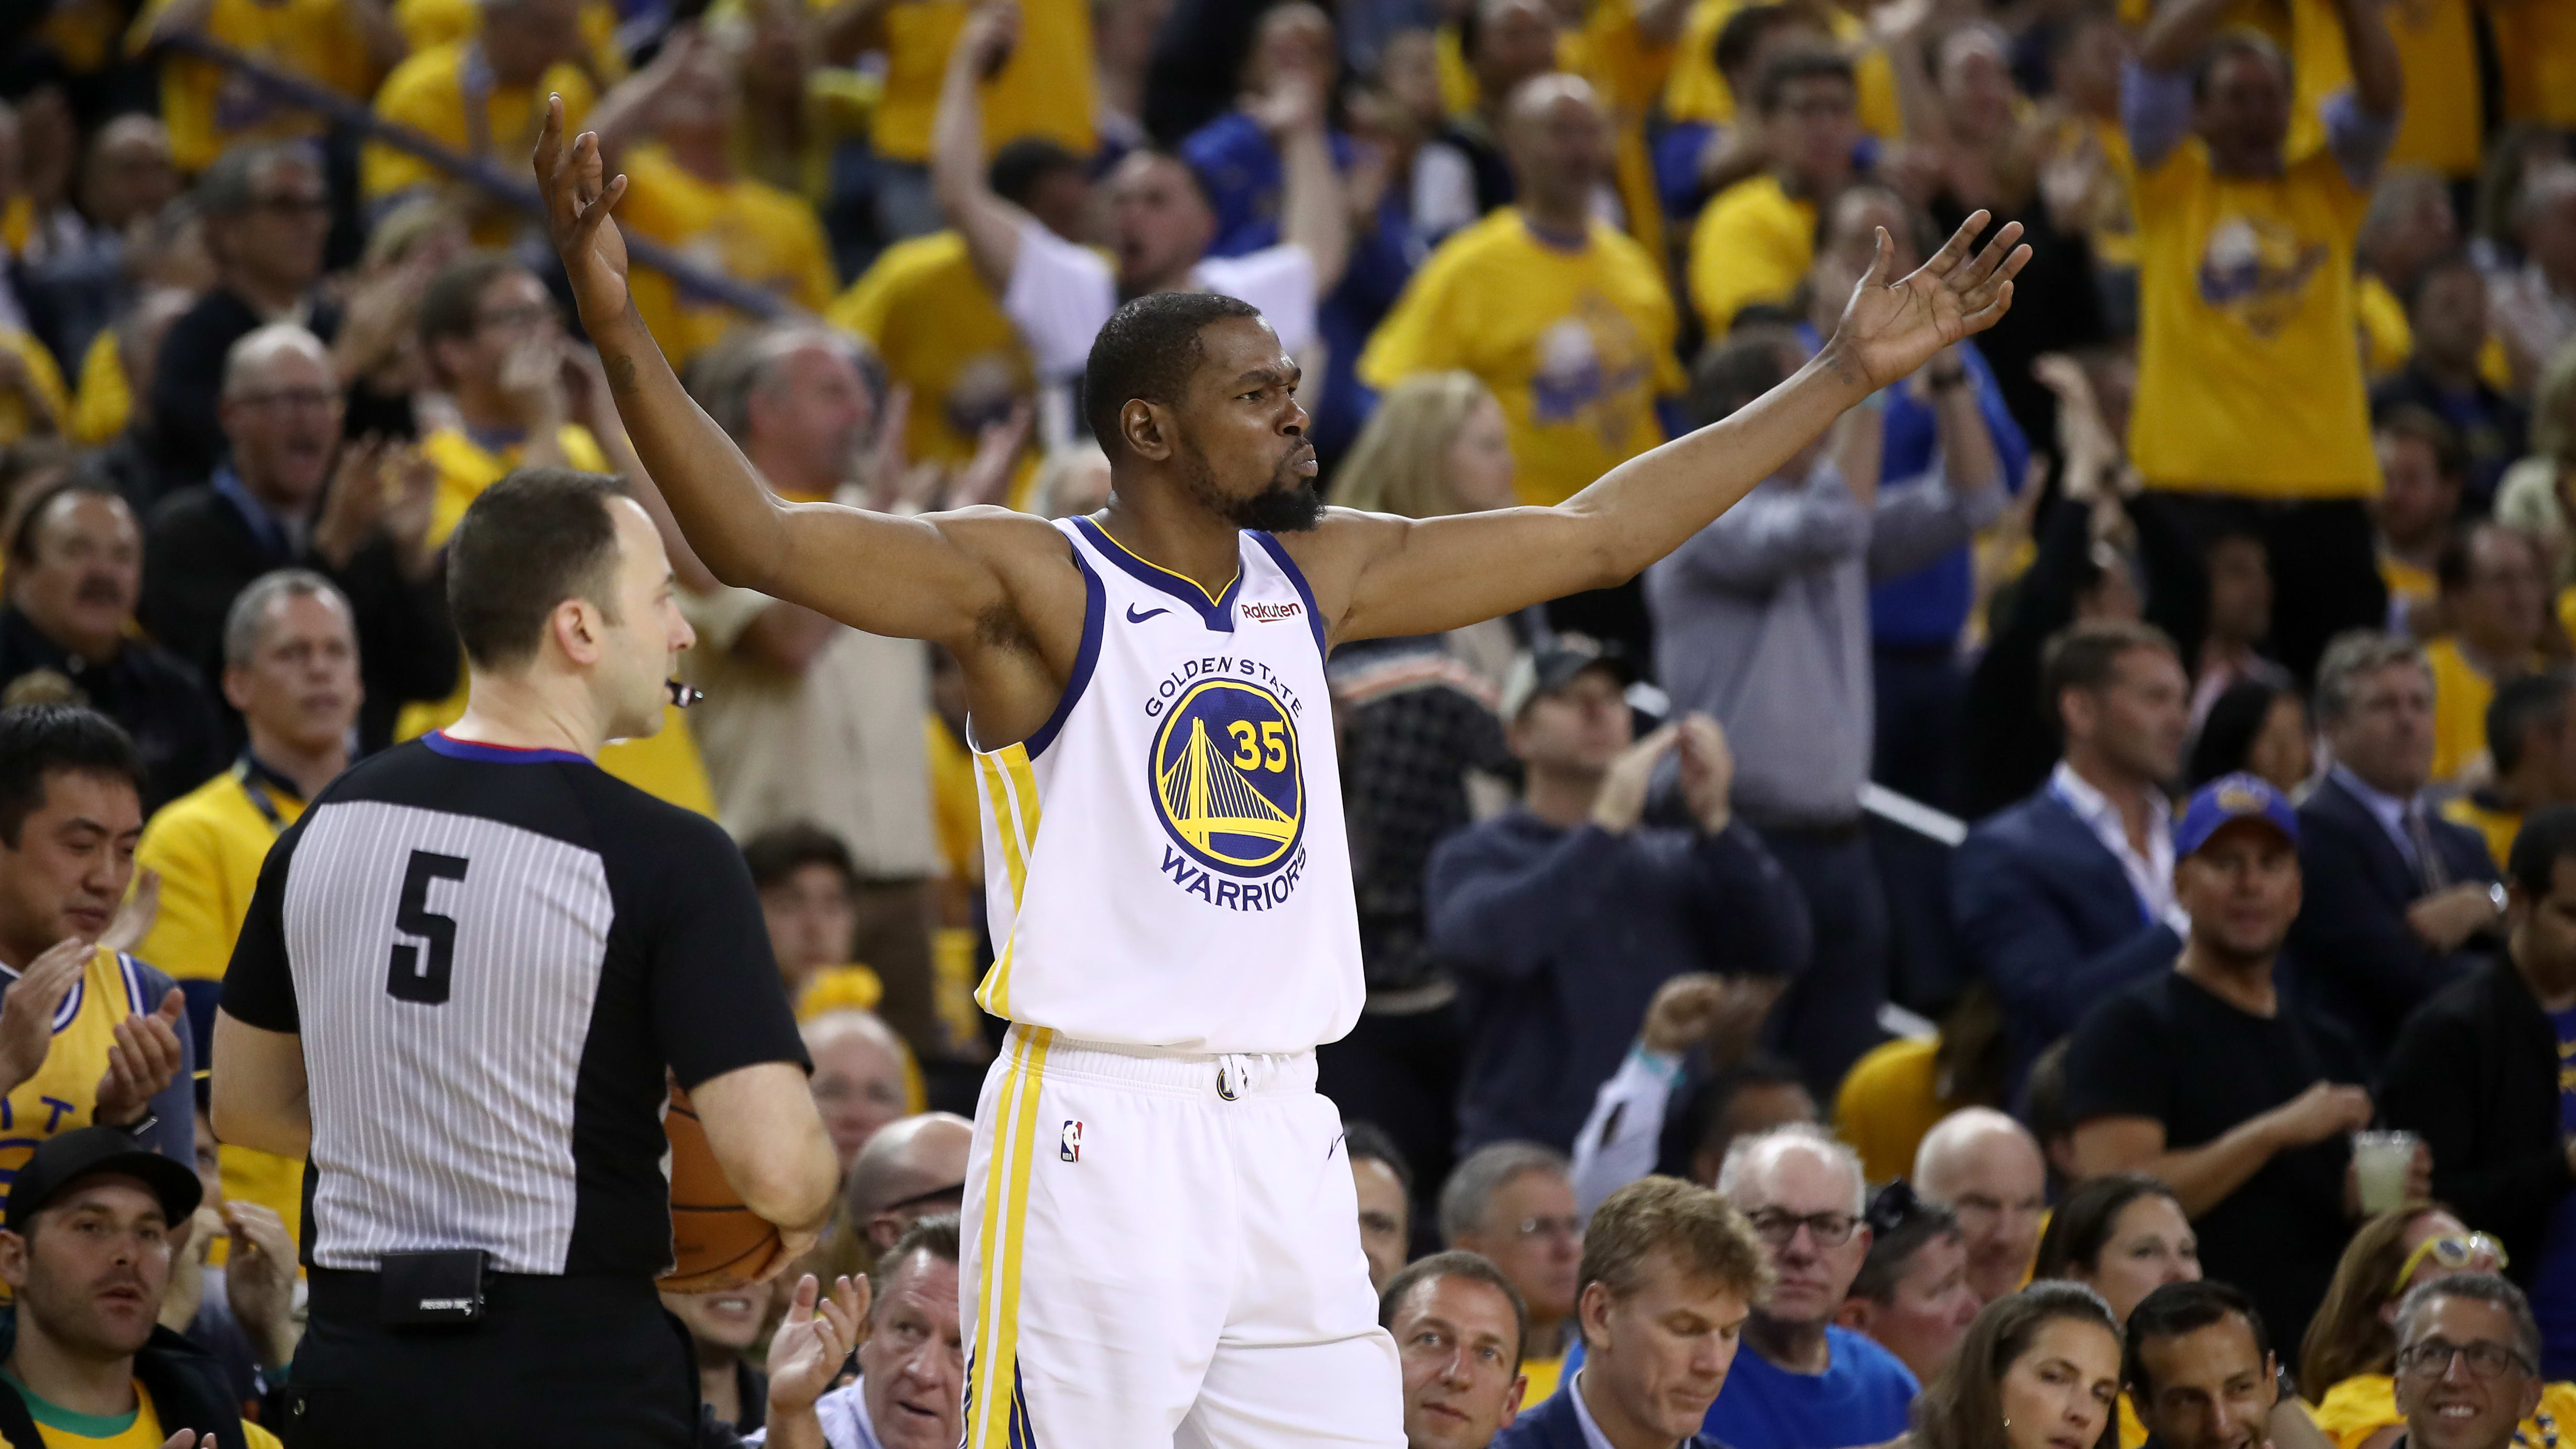 OAKLAND, CALIFORNIA - MAY 08:   Kevin Durant #35 of the Golden State Warriors reacts before taking the ball out of bounds against the Houston Rockets during Game Five of the Western Conference Semifinals of the 2019 NBA Playoffs at ORACLE Arena on May 08, 2019 in Oakland, California.  NOTE TO USER: User expressly acknowledges and agrees that, by downloading and or using this photograph, User is consenting to the terms and conditions of the Getty Images License Agreement.  (Photo by Ezra Shaw/Getty Images)